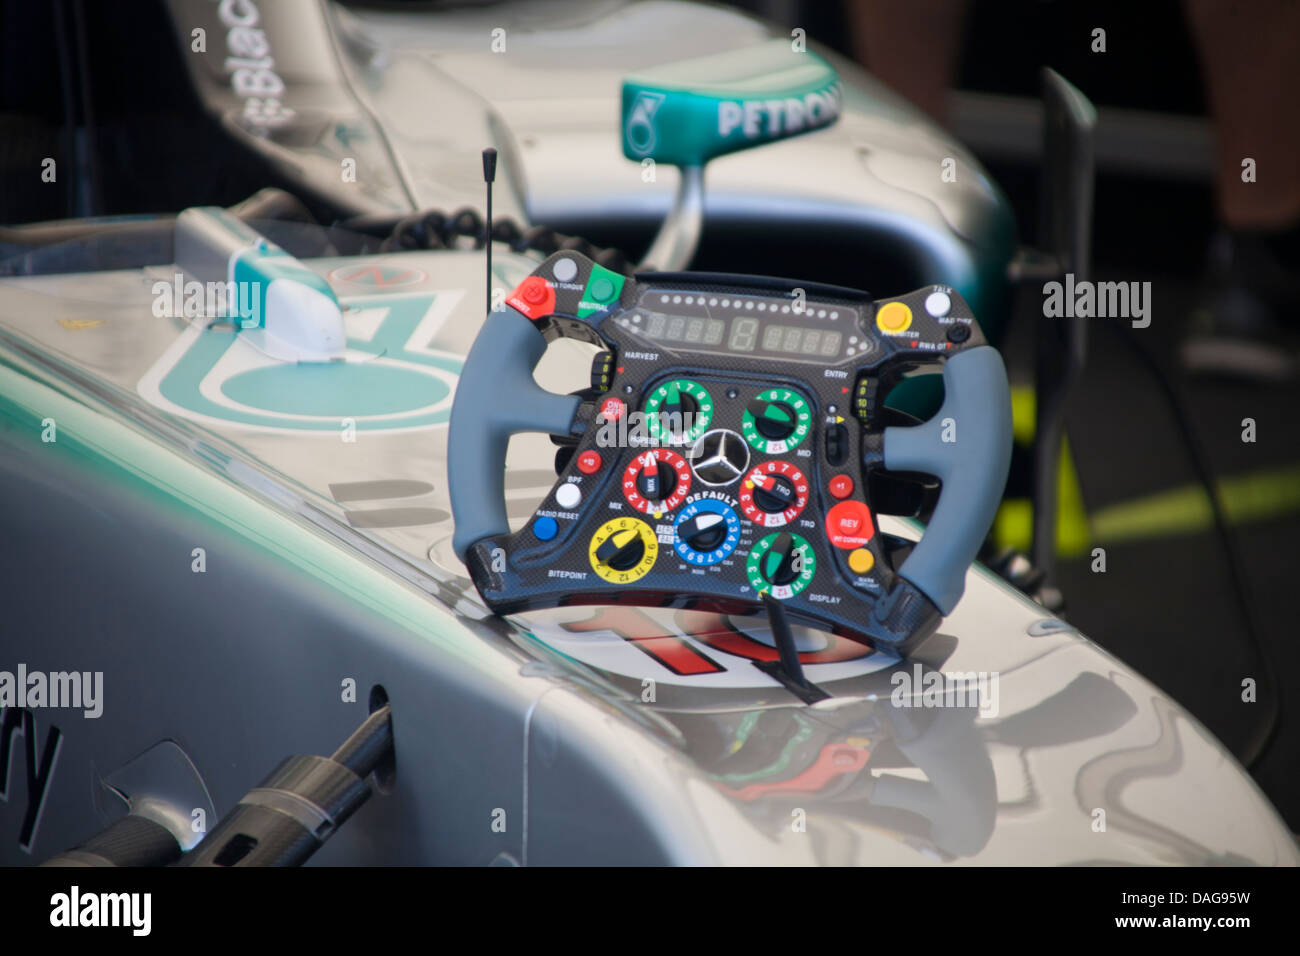 Steering wheel resting on nose of a Mercedes Formula 1 car at Goodwood Festival of Speed, Chichester, West Sussex - Stock Image